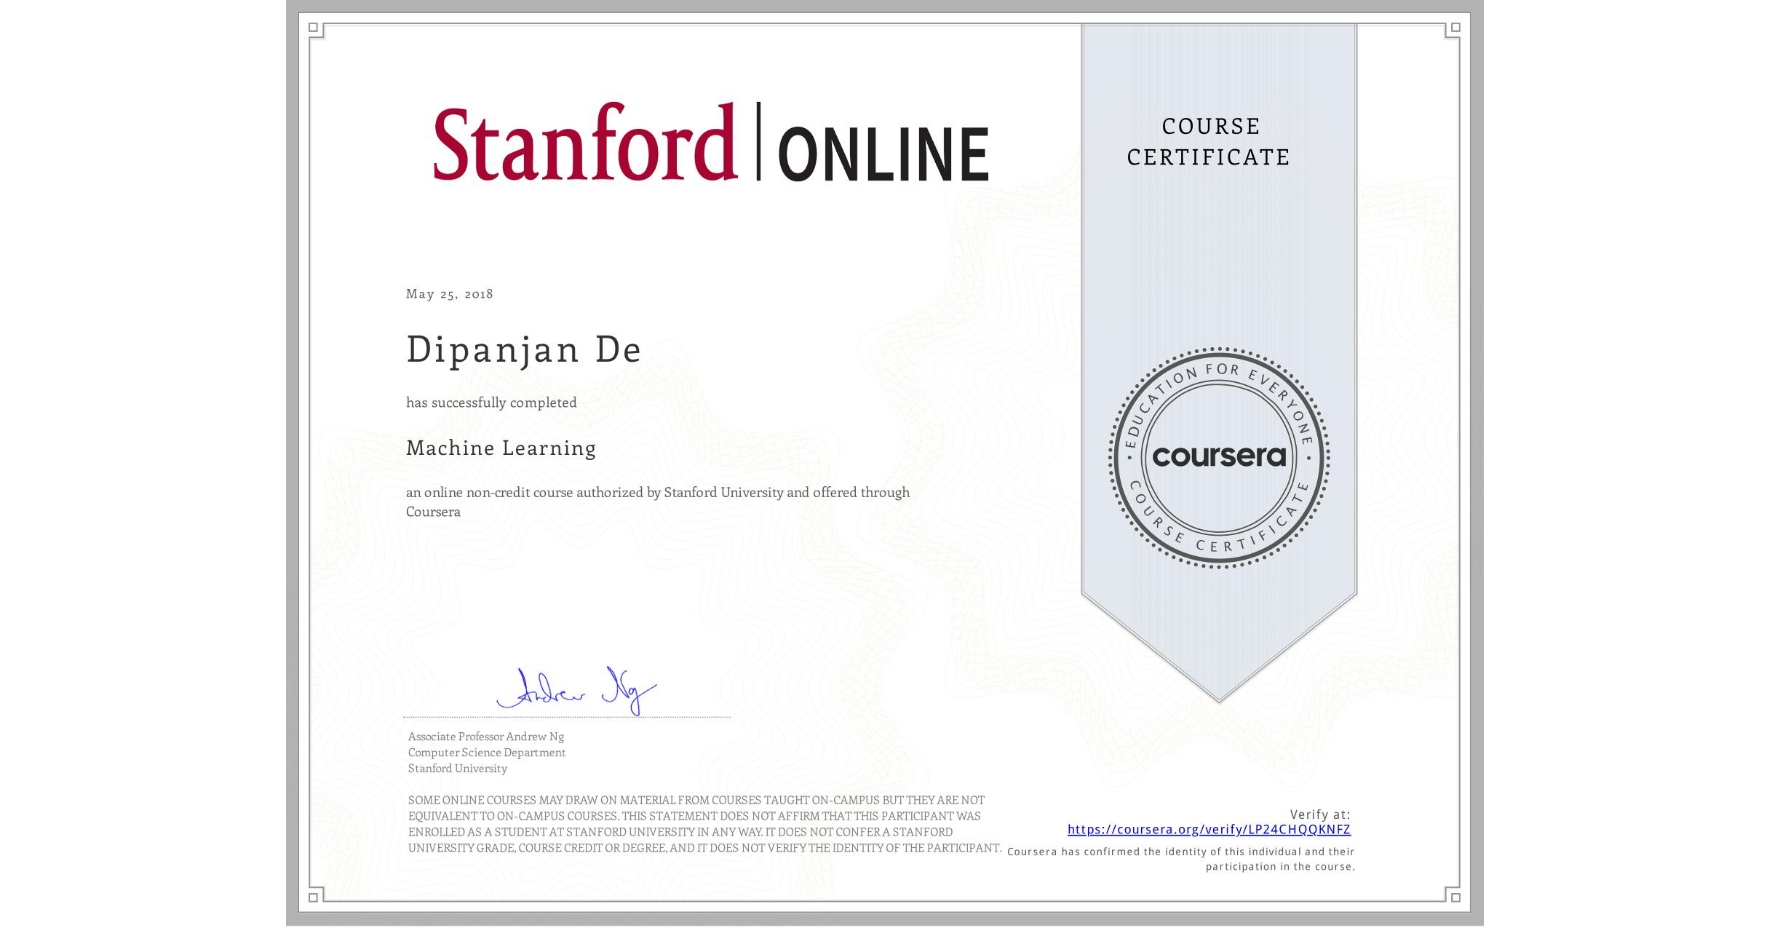 View certificate for Dipanjan De, Machine Learning, an online non-credit course authorized by Stanford University and offered through Coursera